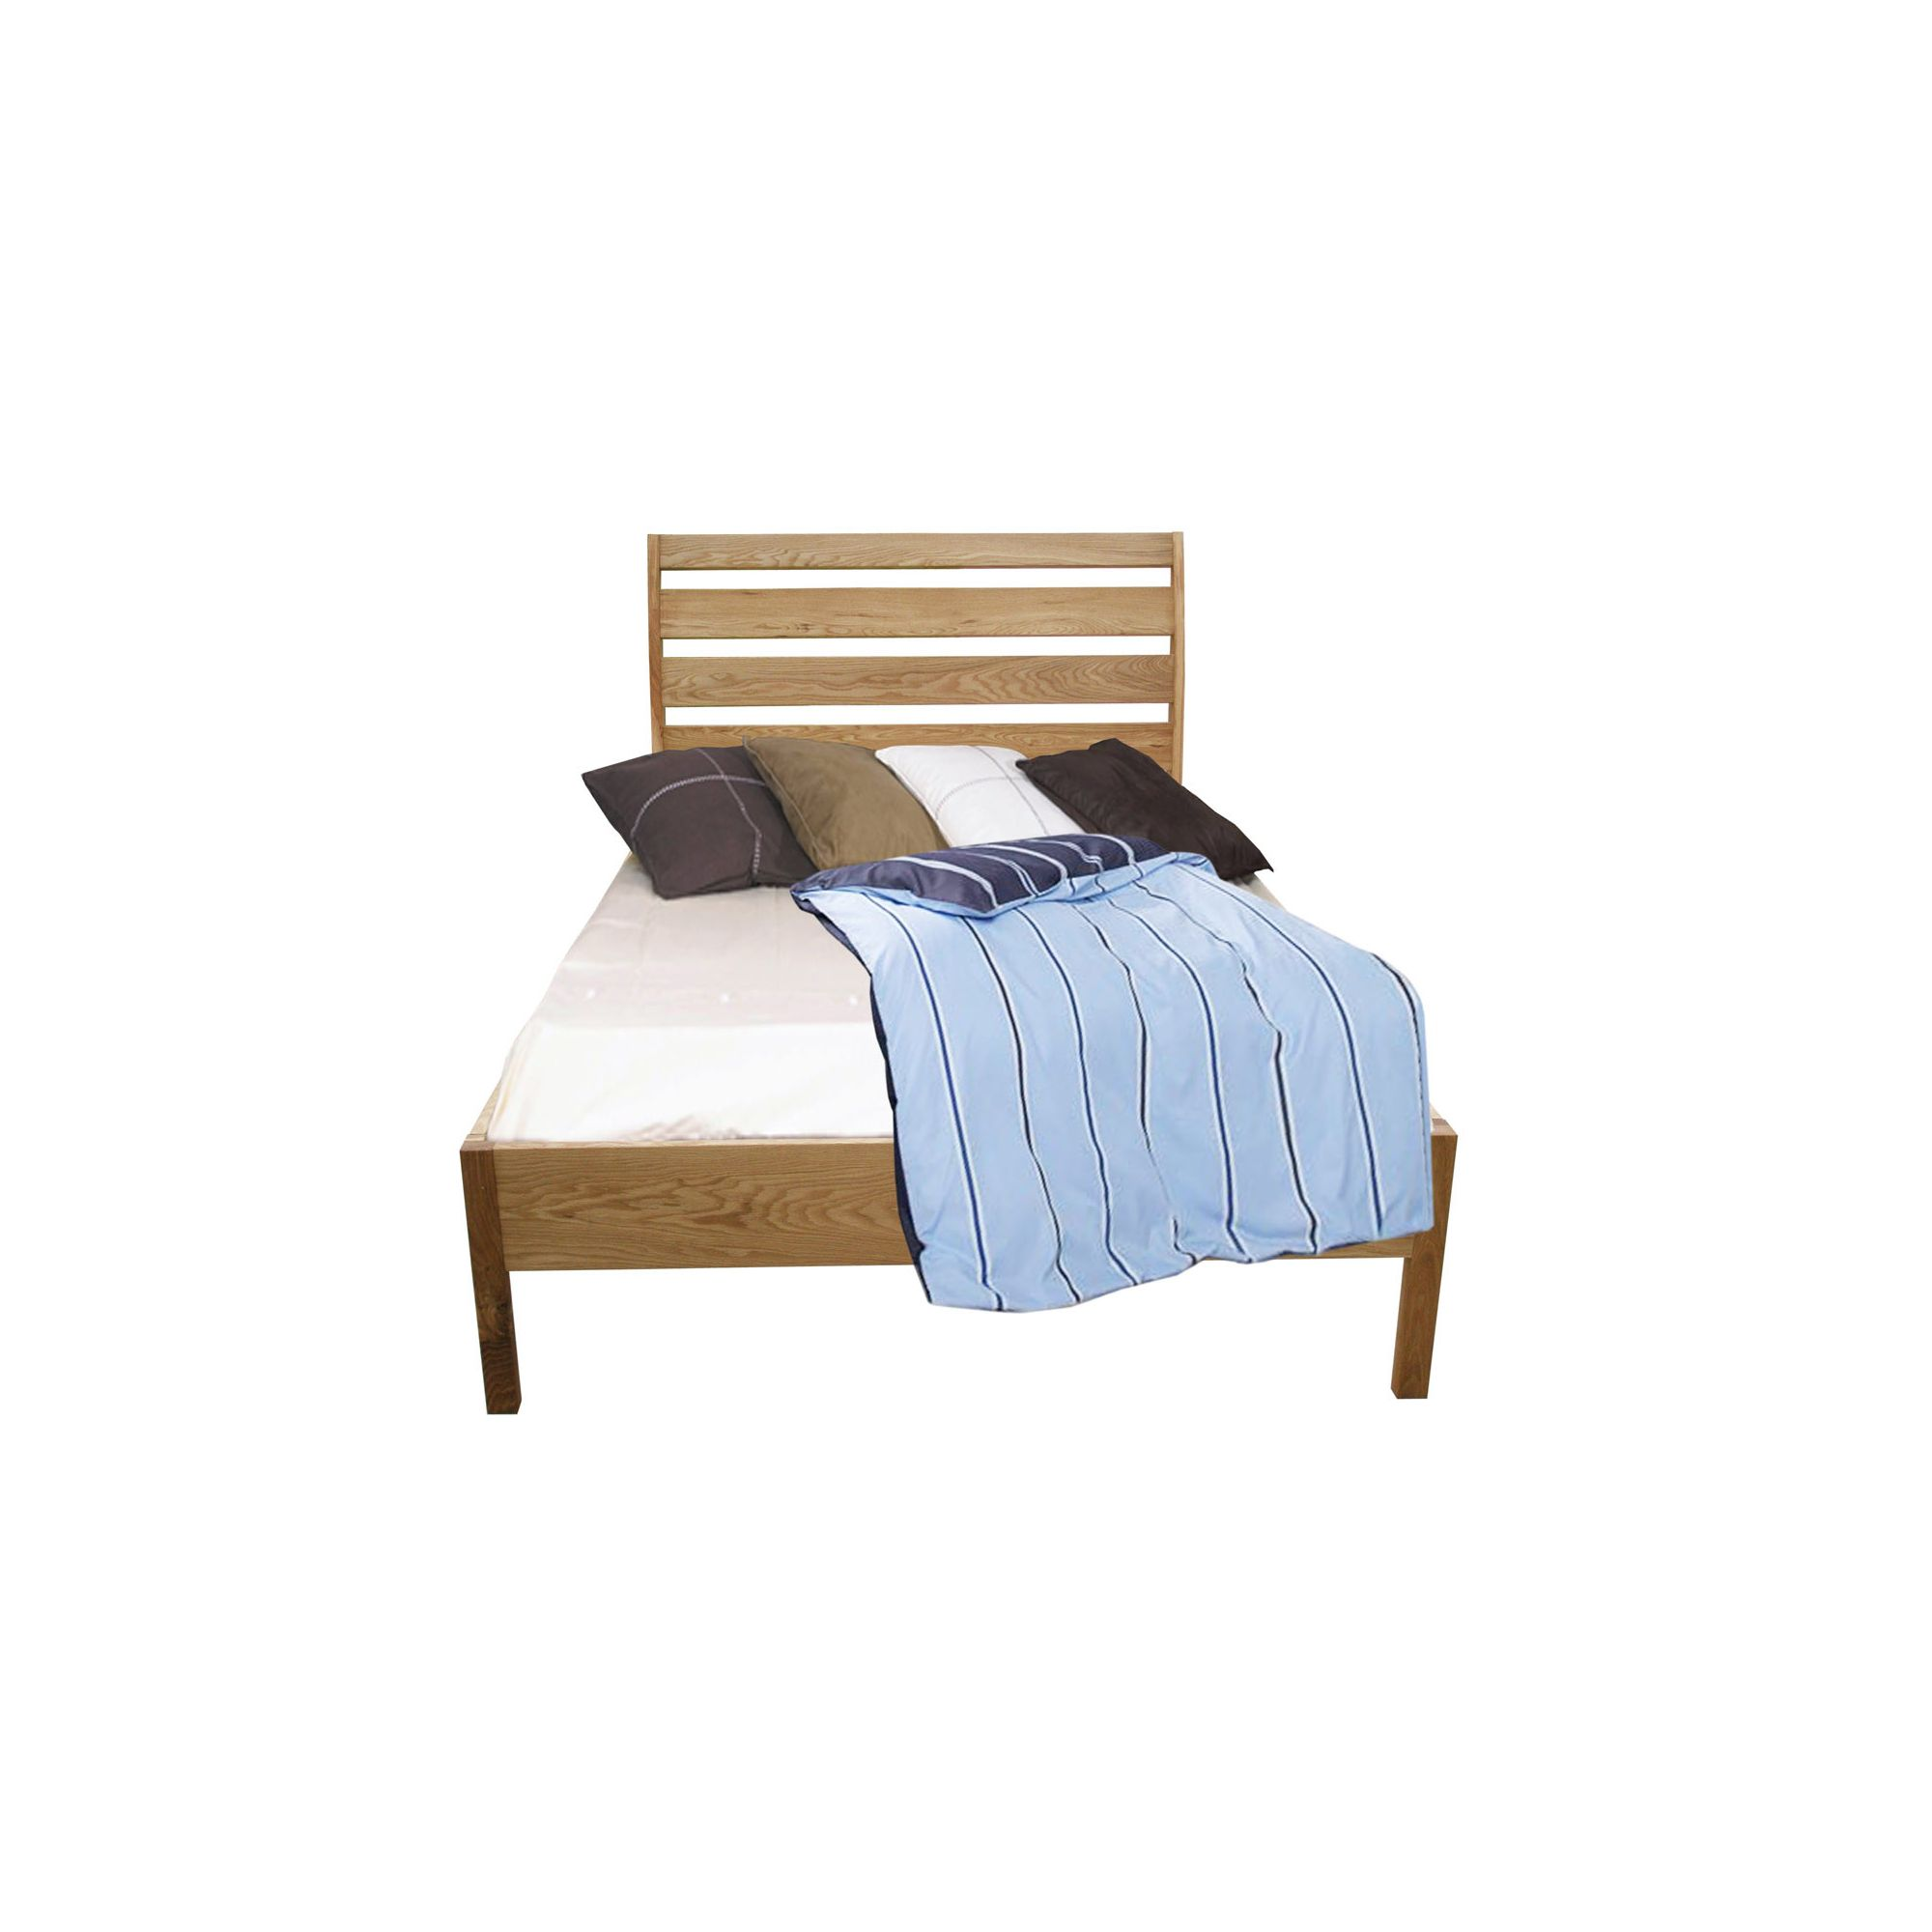 Home Zone Furniture Churchill Bed Frame - Single at Tesco Direct